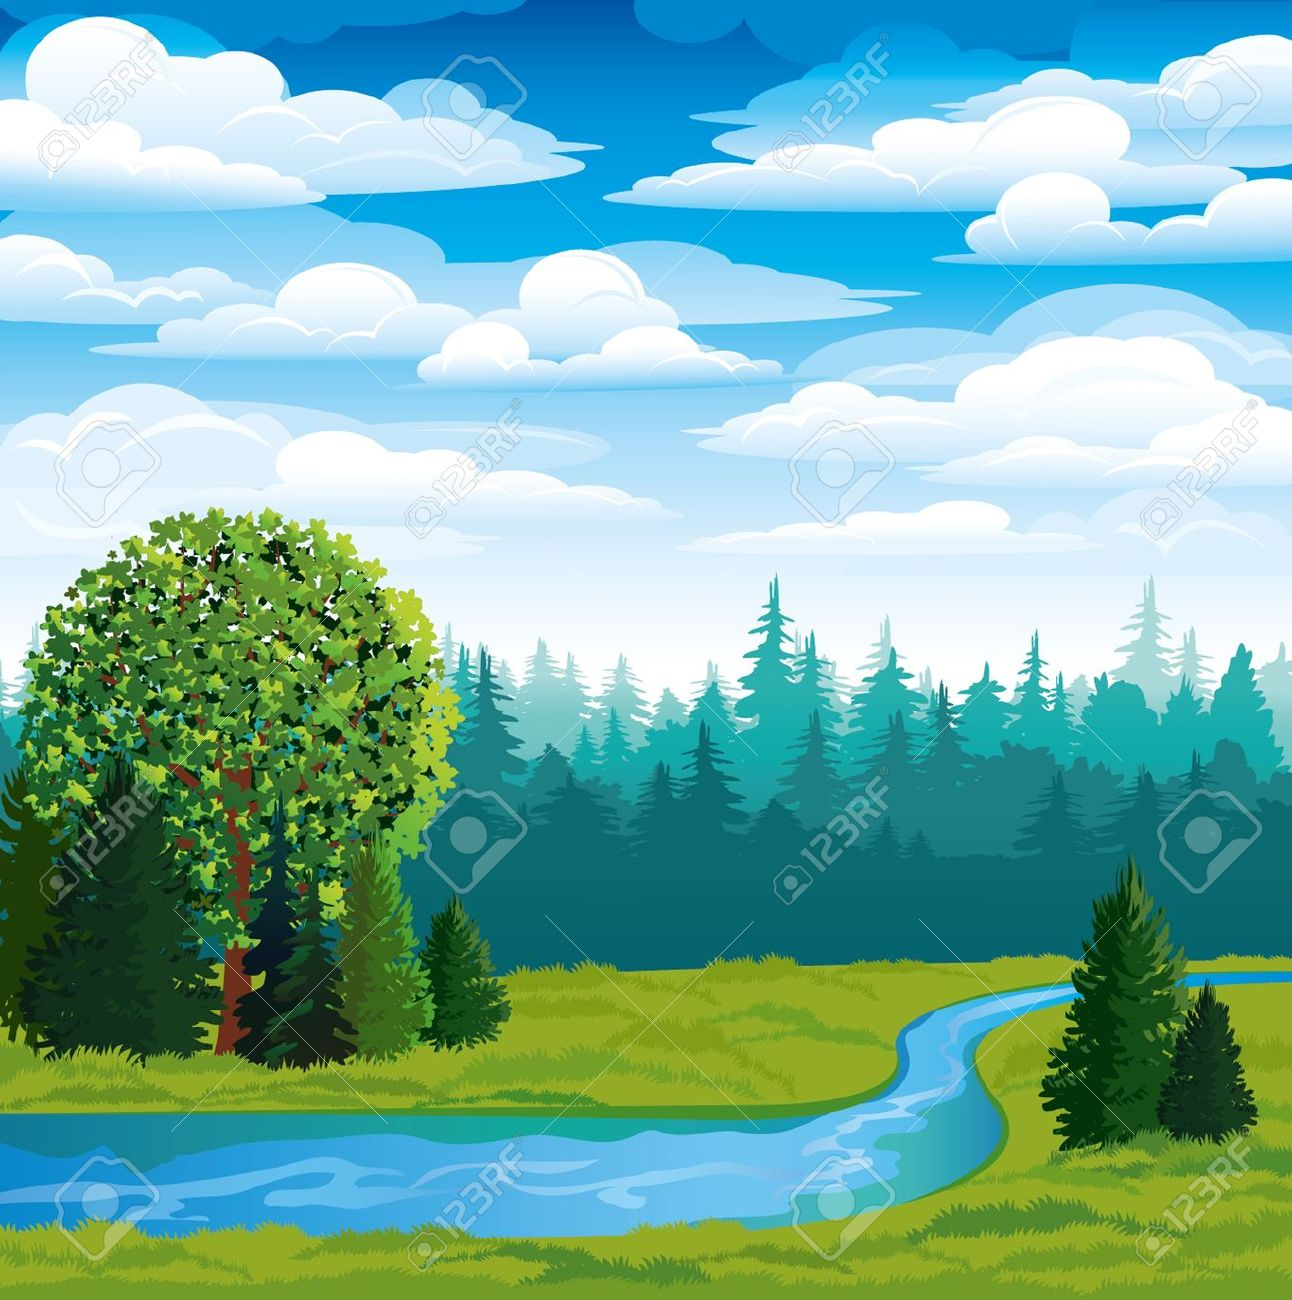 River background clipart clip free download Free clipart no background river - ClipartFox clip free download